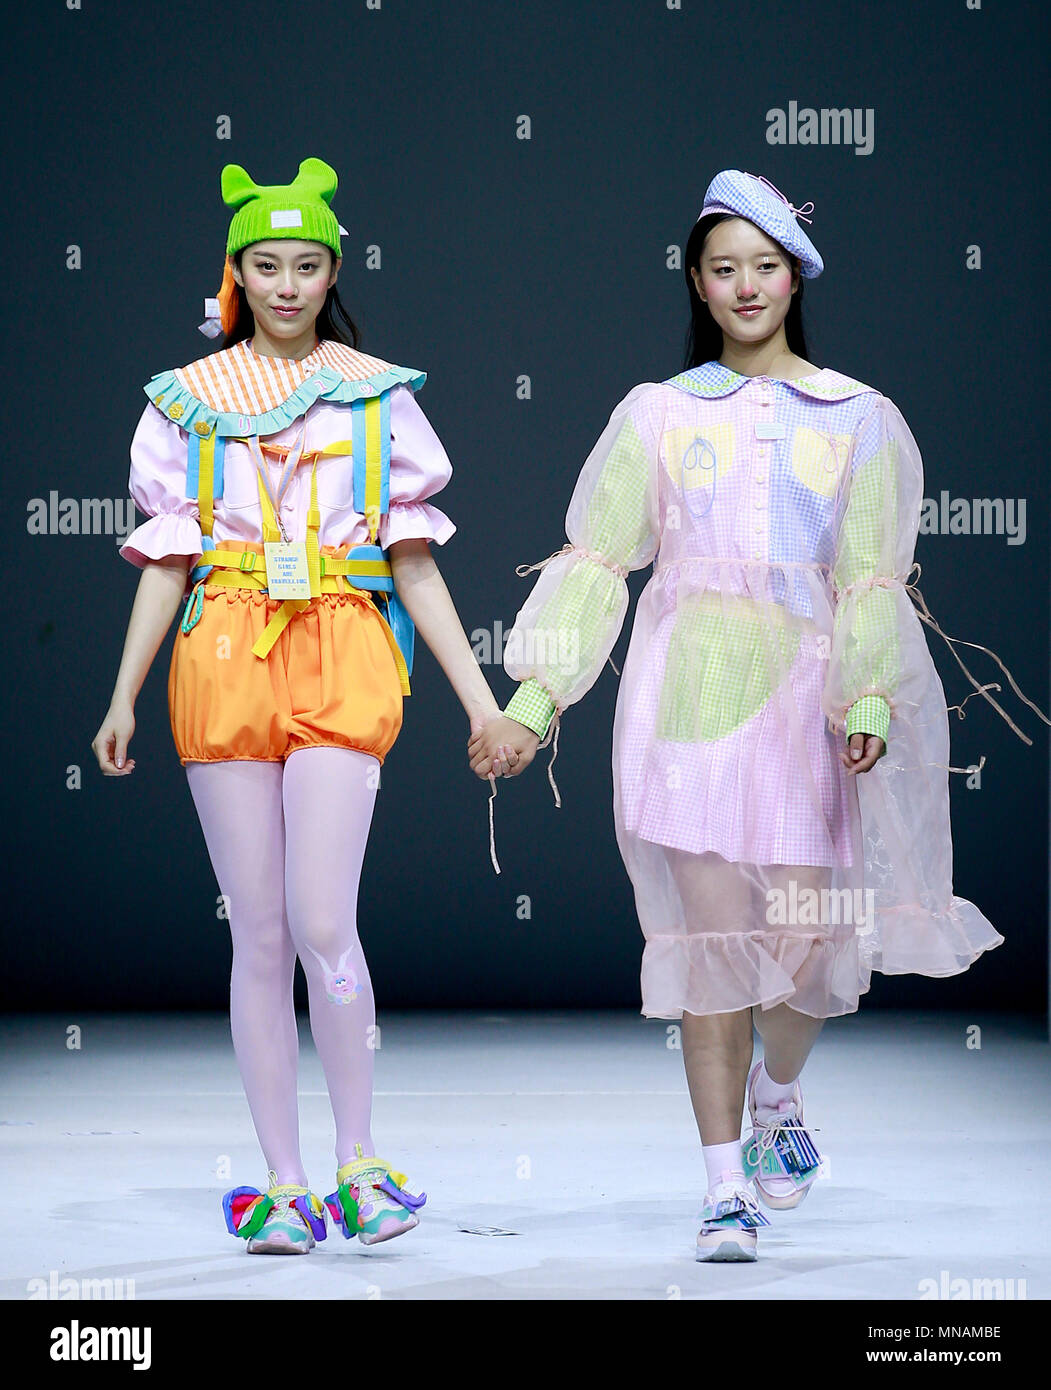 Beijing China 16th May 2018 Models Present Creations Designed By Graduates Of Zhejiang Fashion Institute Of Technology During The China Graduate Fashion Week In Beijing Capital Of China May 16 2018 Credit